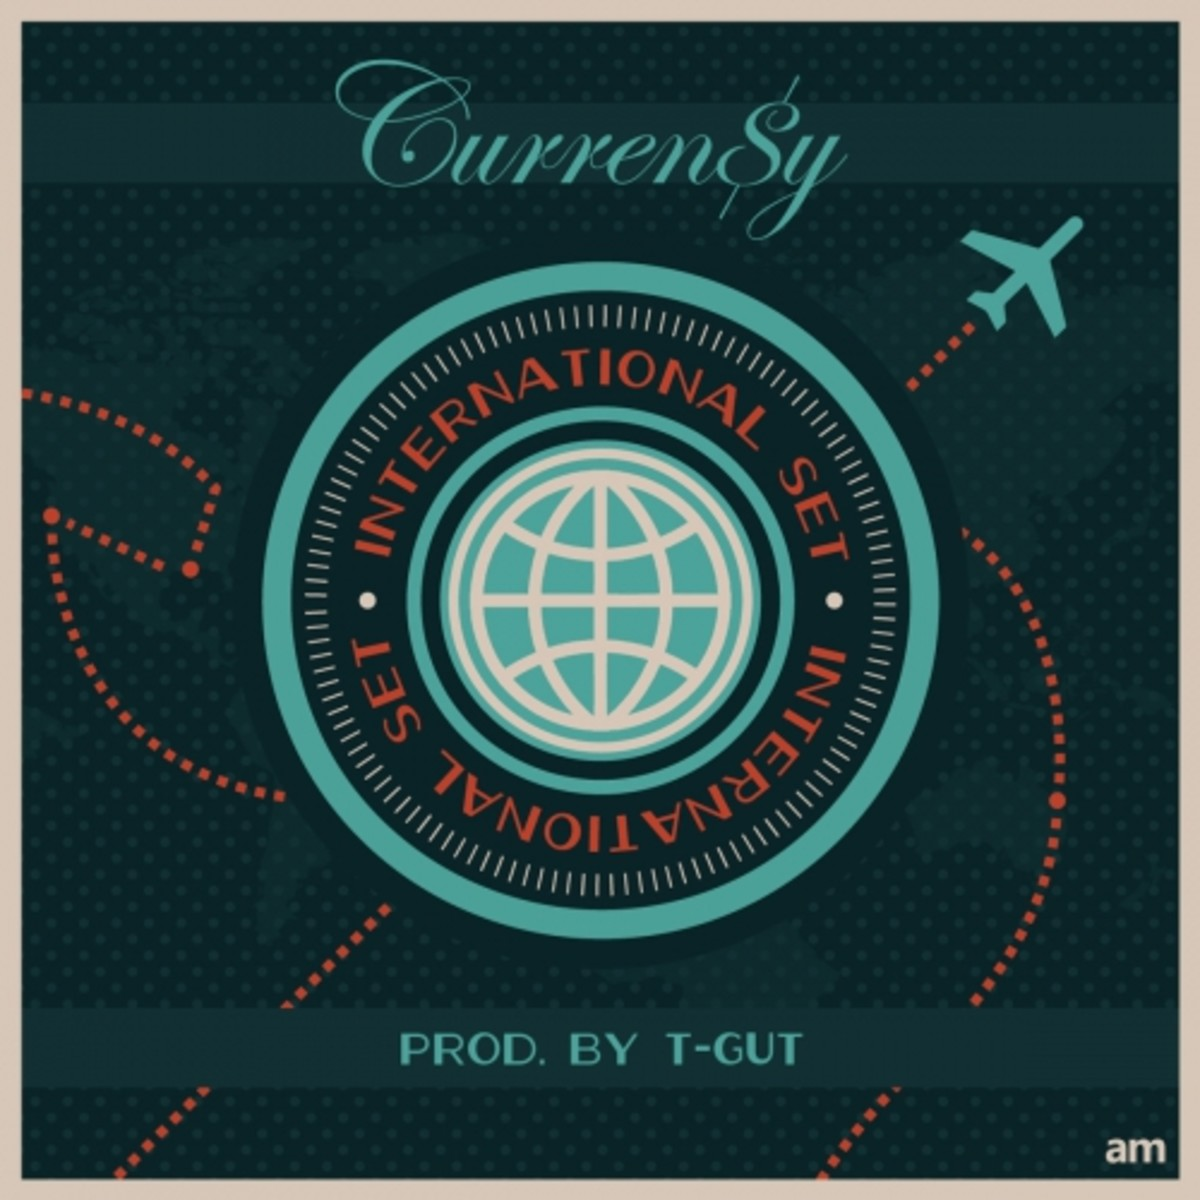 currensy-international-set.jpg